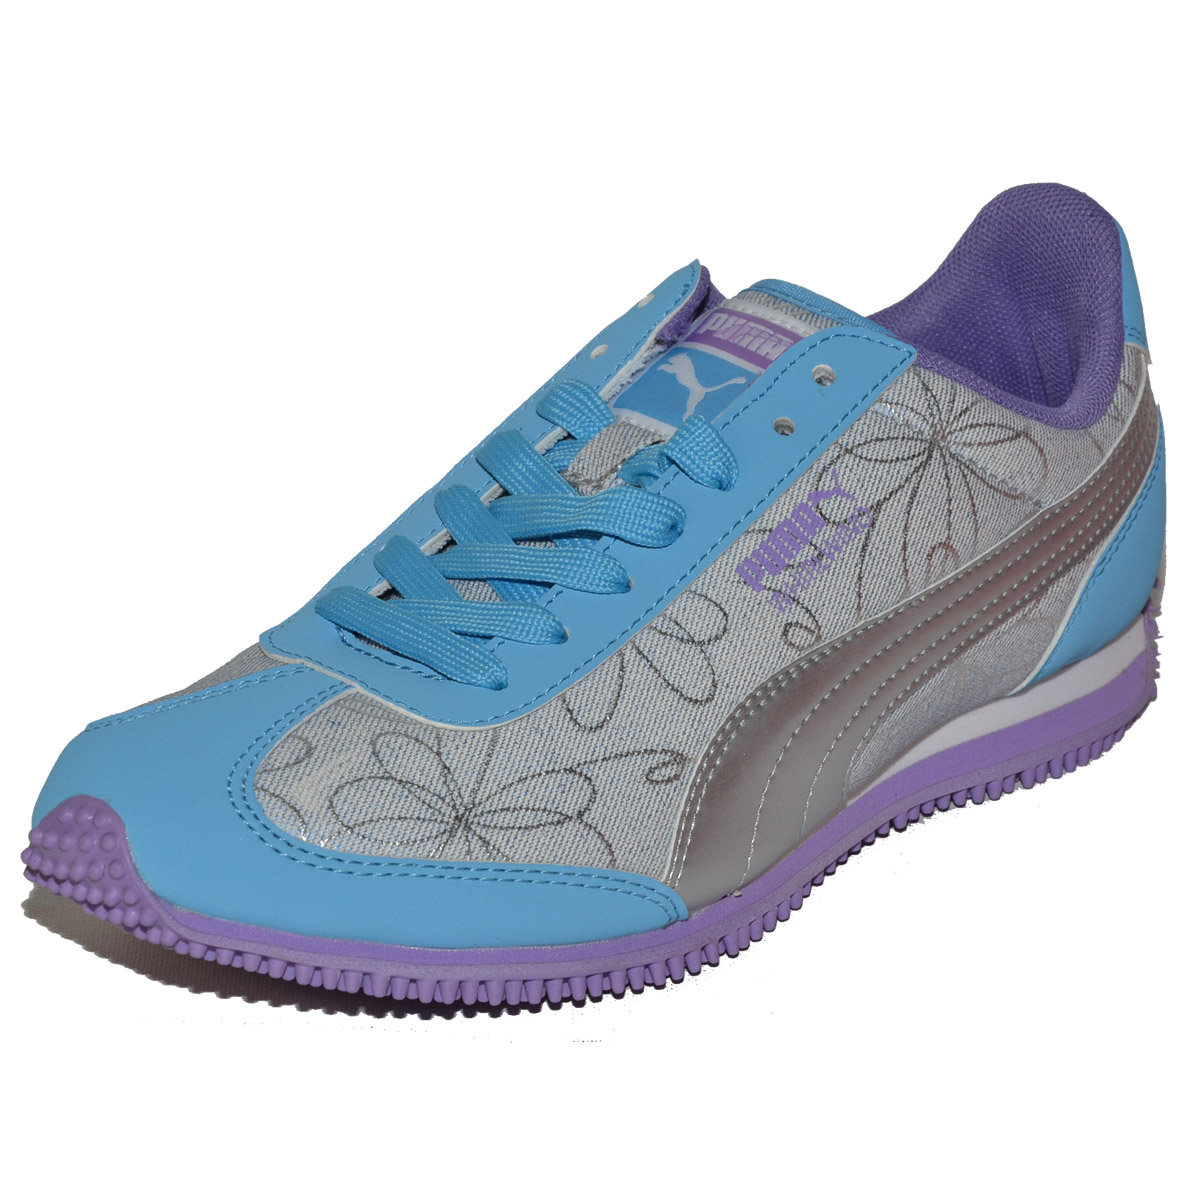 PUMA Whirlwind Swirl JR Junior Youth Big Kids Girls Shoes ...